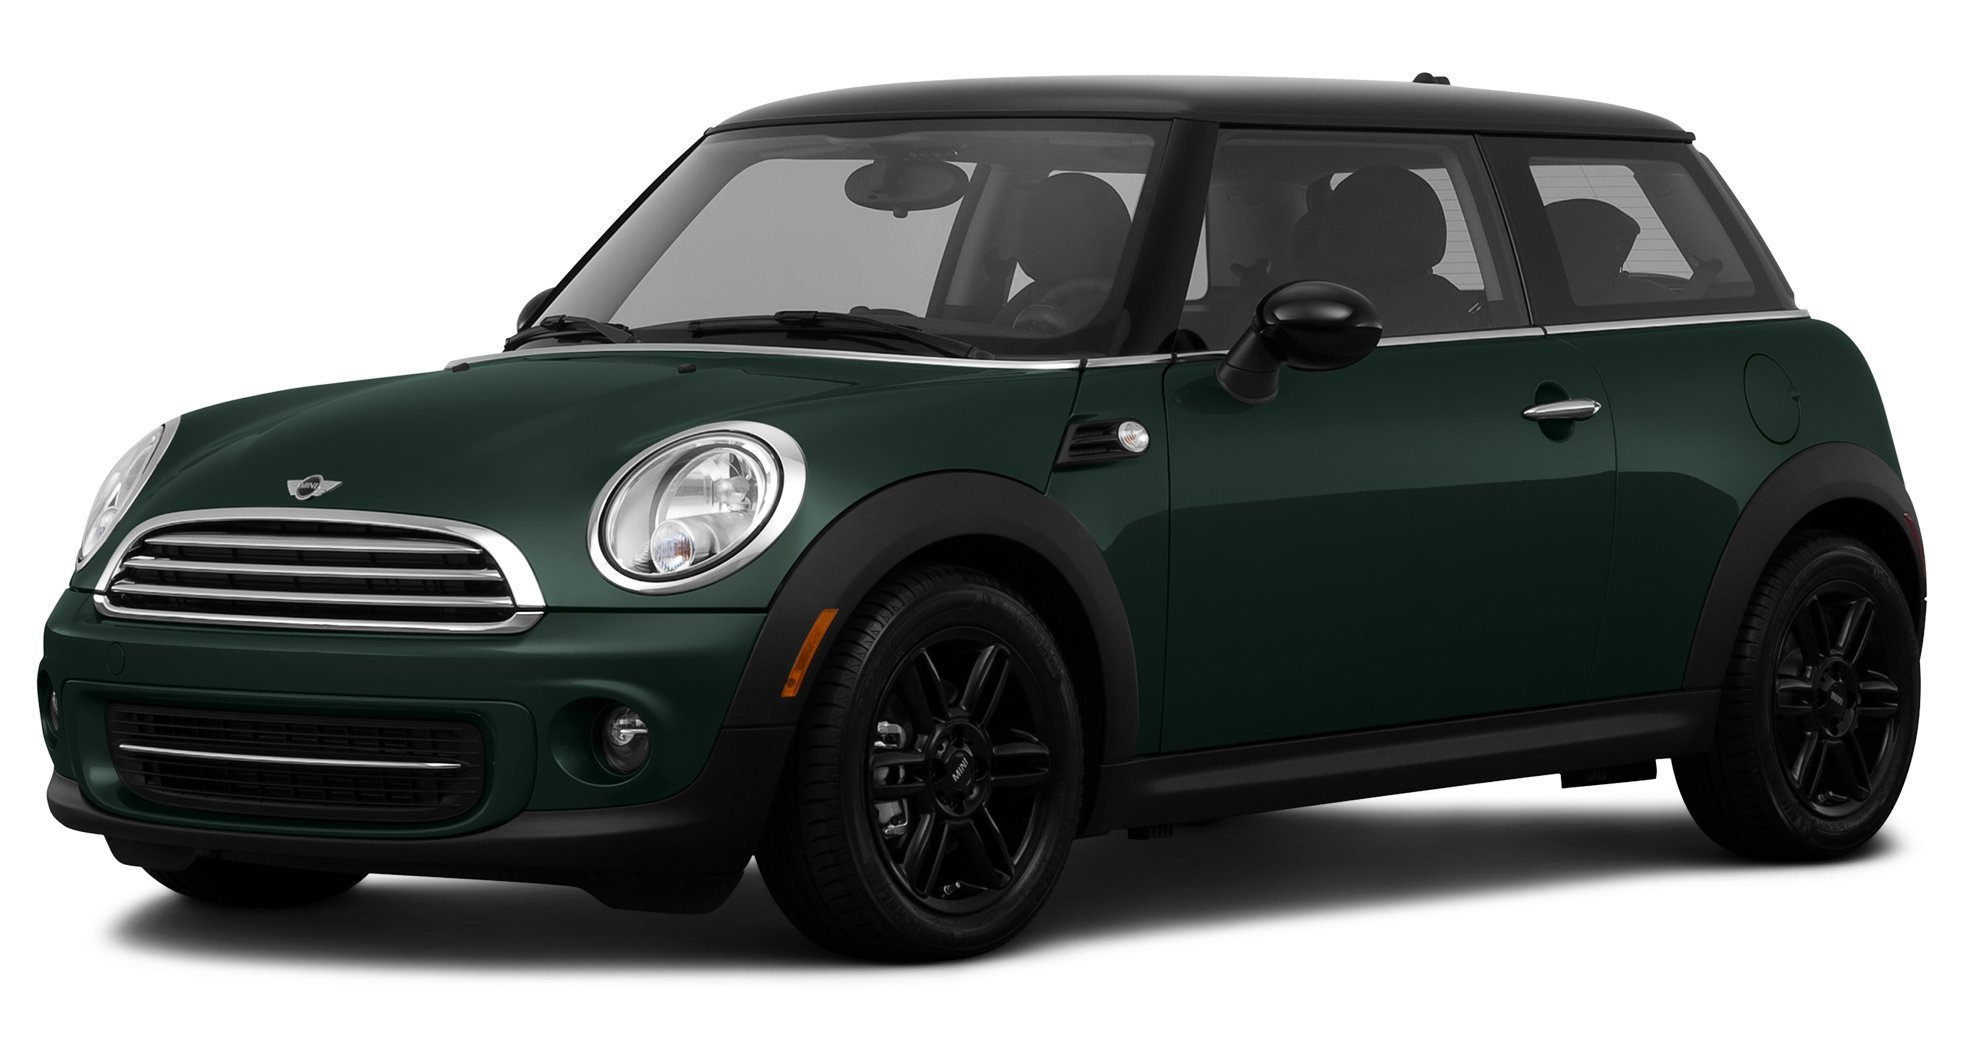 Amazoncom 2013 Mini Cooper Reviews Images And Specs Vehicles